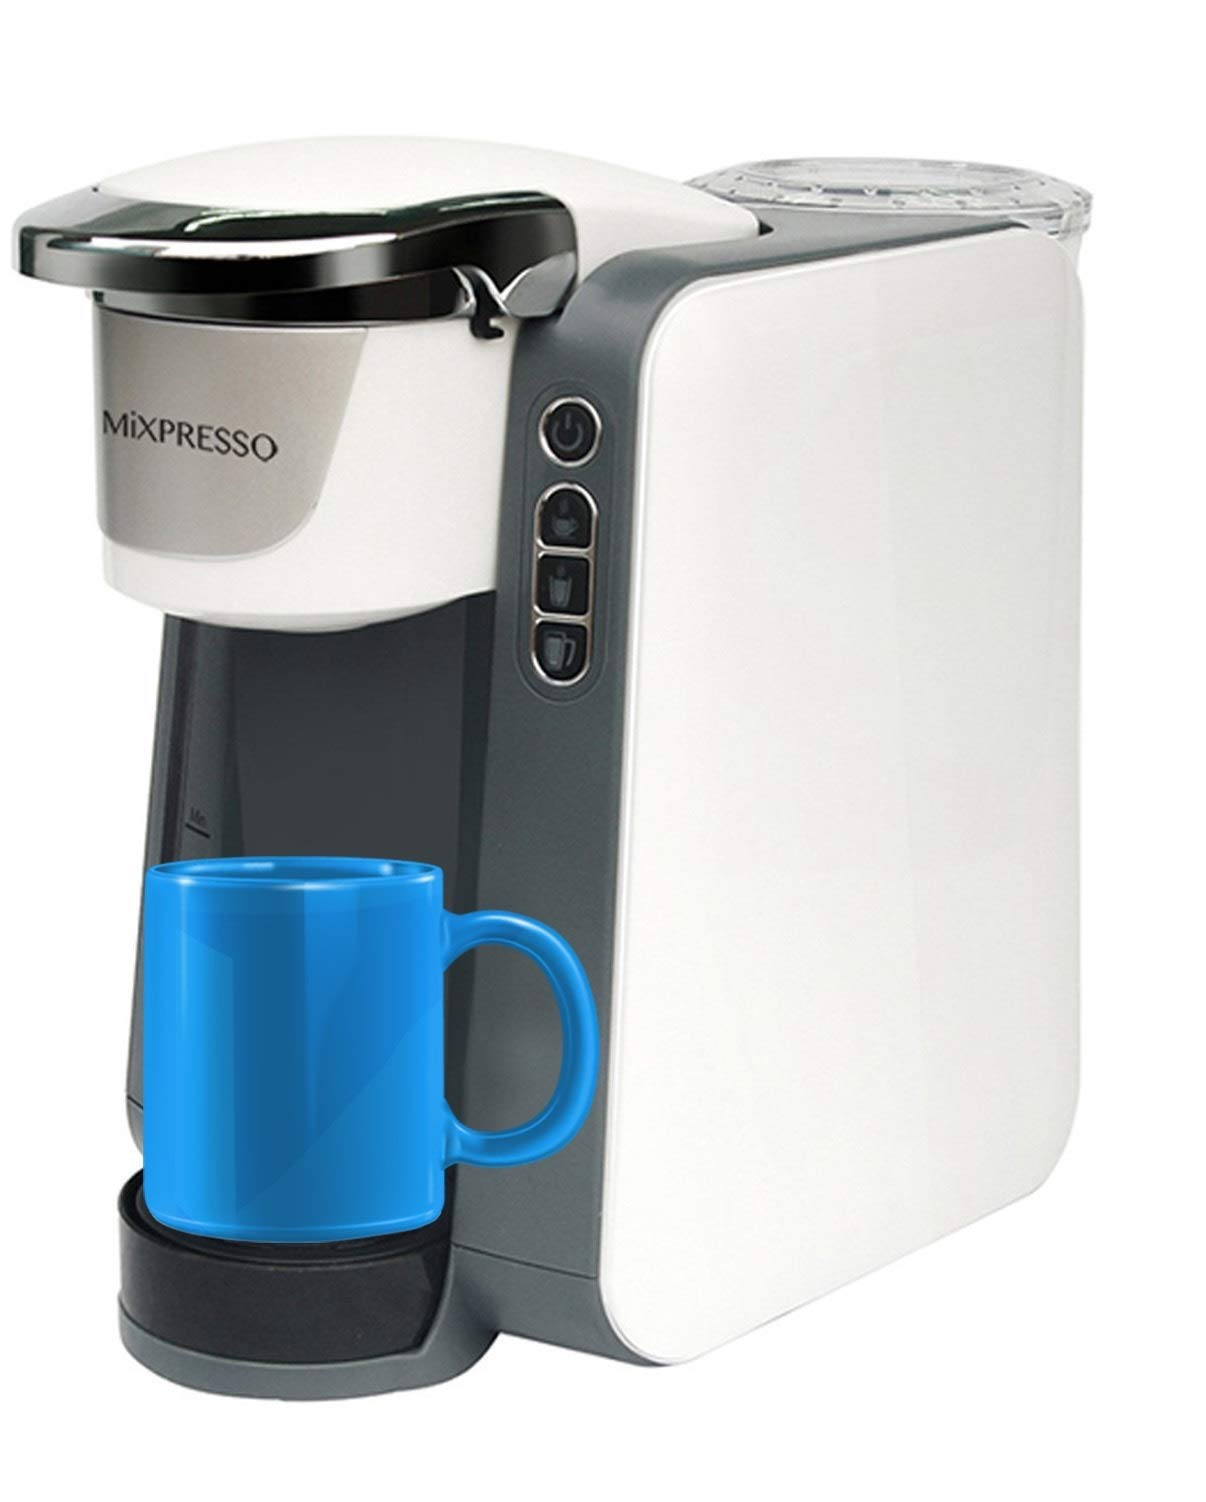 Mixpresso Single Serve K-Cup Coffee Maker Compatible With Most Single Coffee K Cups Including 1.0 & 2.0 K-Cup Pods, QuickBrew Technology And Removable 45oz Water Tank